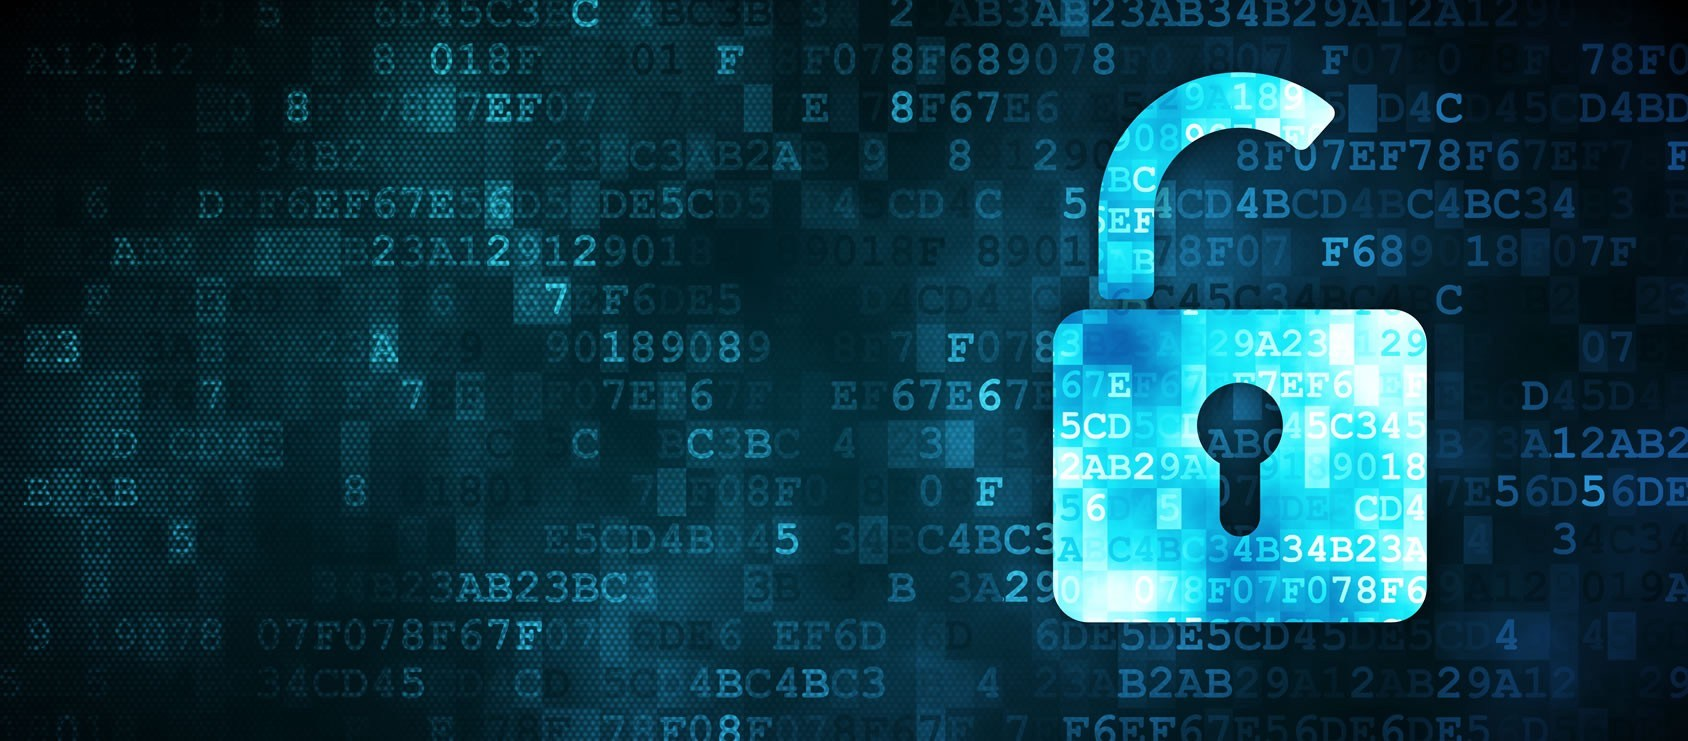 $11.7 Trillion Rated Debt Have High Risk Exposure To Cyber-attacks